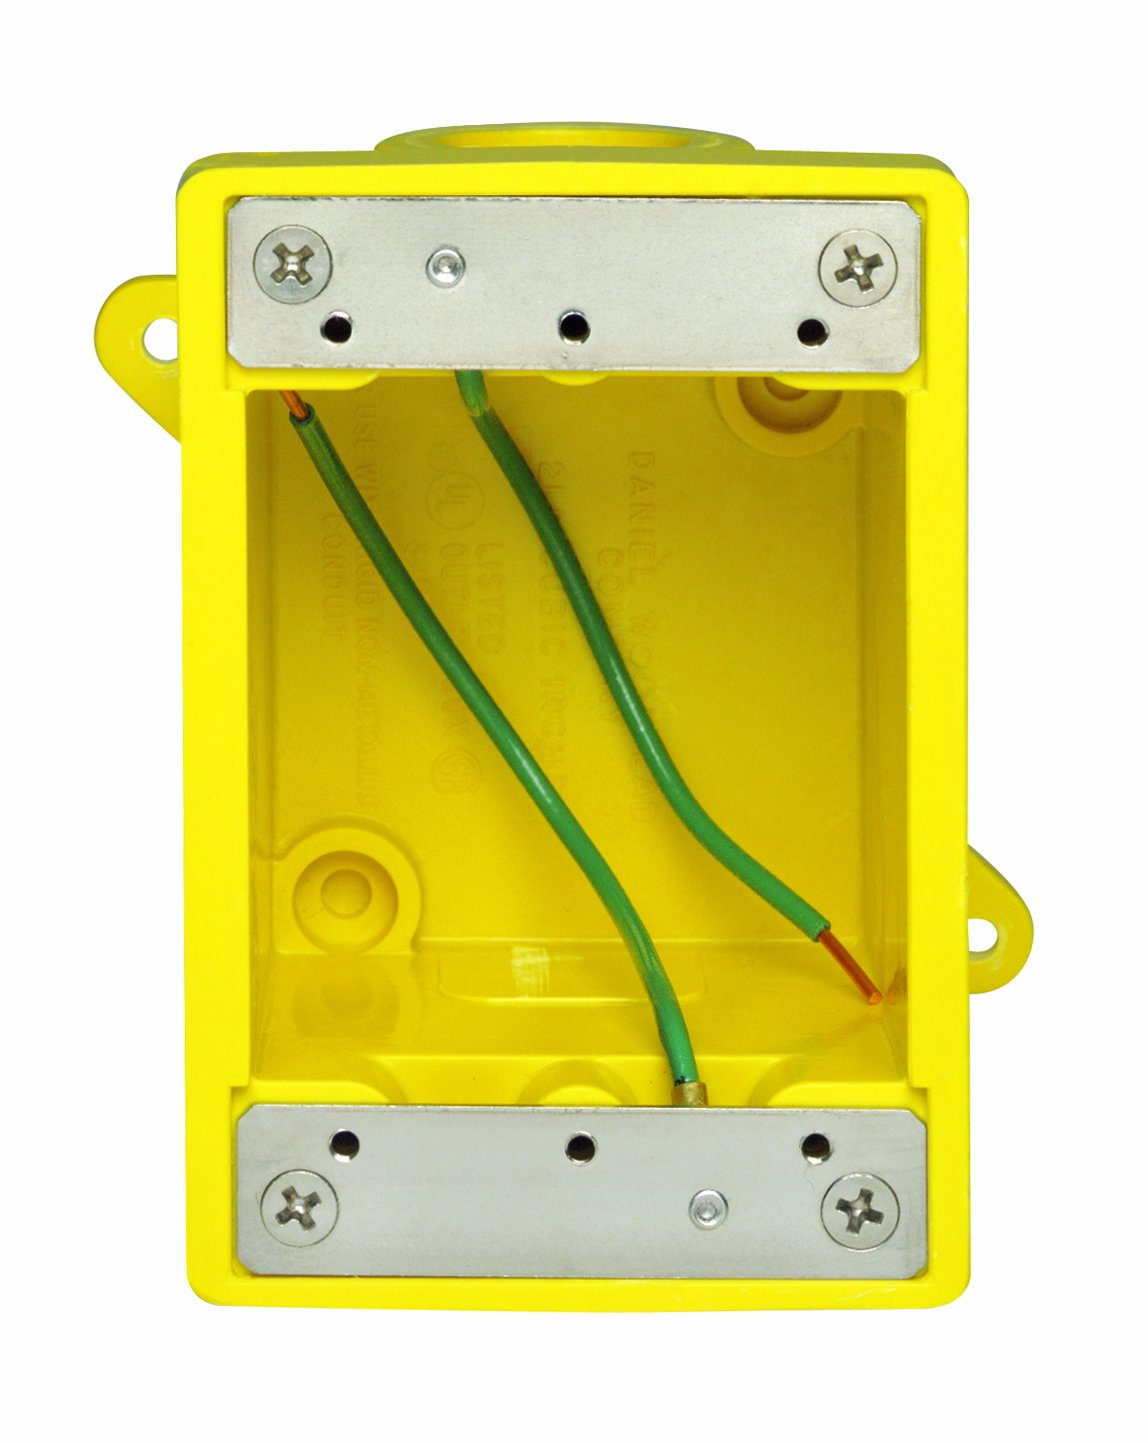 Leviton 452CR Fd Box 2 Ko Openings 1/2-Inch for Straight, Locking Receptacle, Wetguard IP66, Yellow